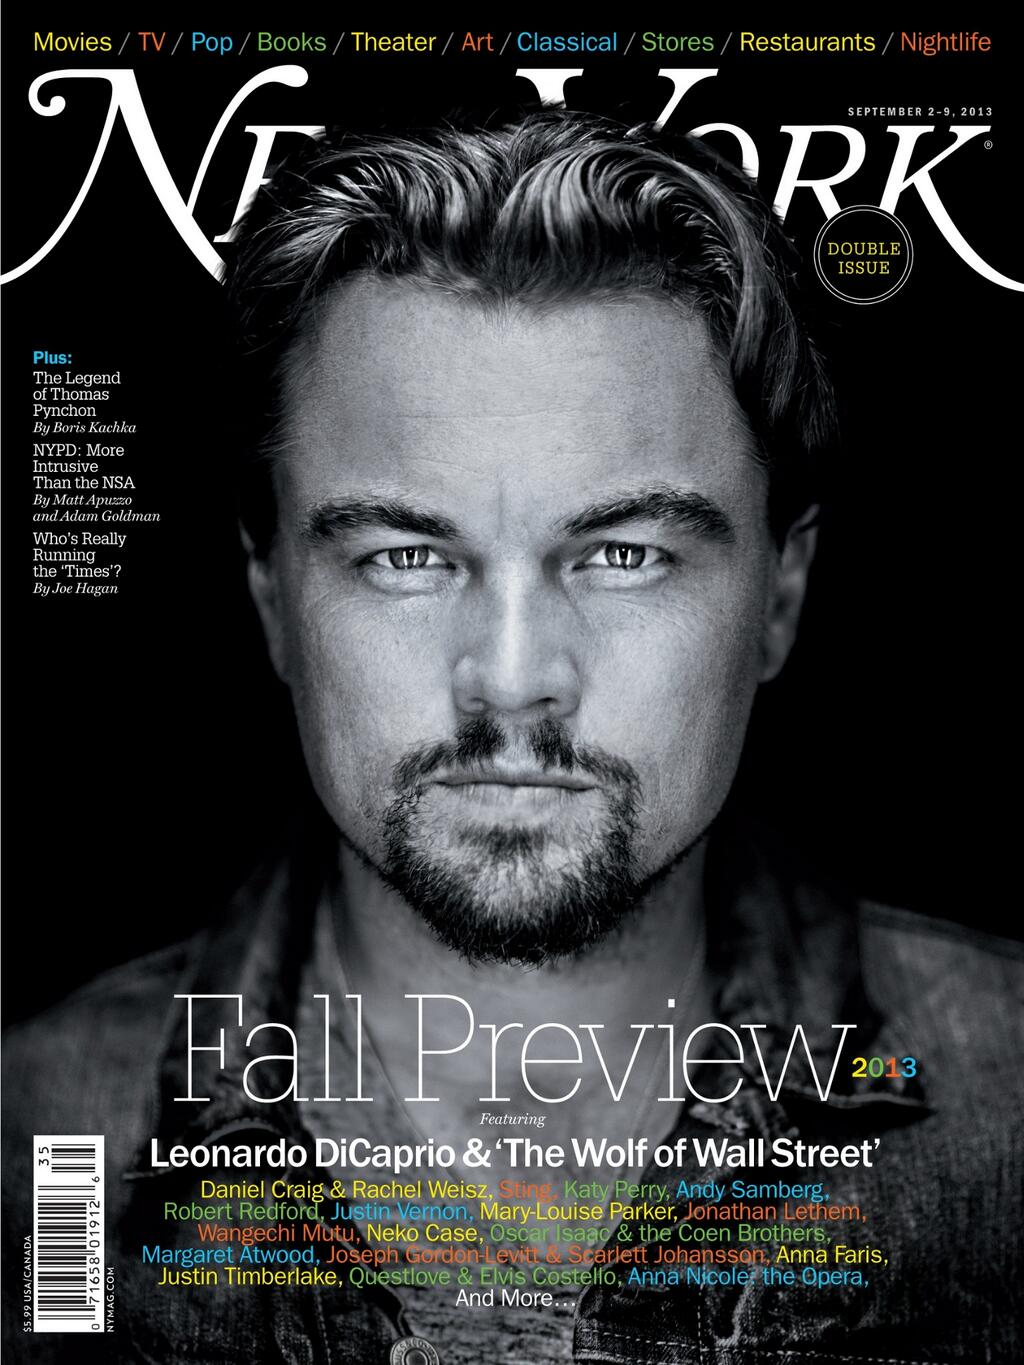 NEW YORK MAG [FALL PREVIEW] THE WOLF OF WALL STREET Dicapr11